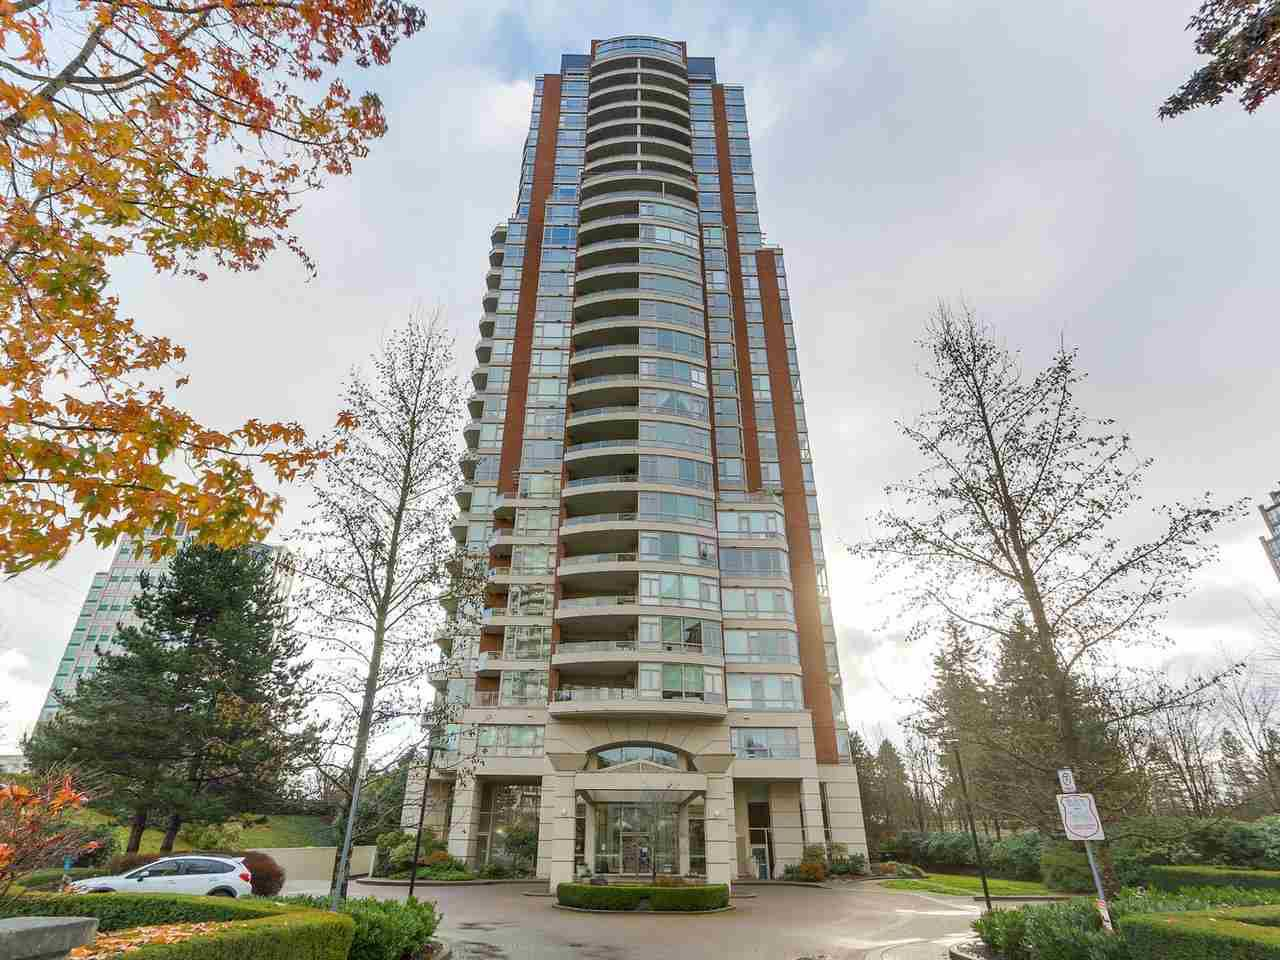 """Main Photo: 1101 6838 STATION HILL Drive in Burnaby: South Slope Condo for sale in """"The Belgravia"""" (Burnaby South)  : MLS®# R2327036"""